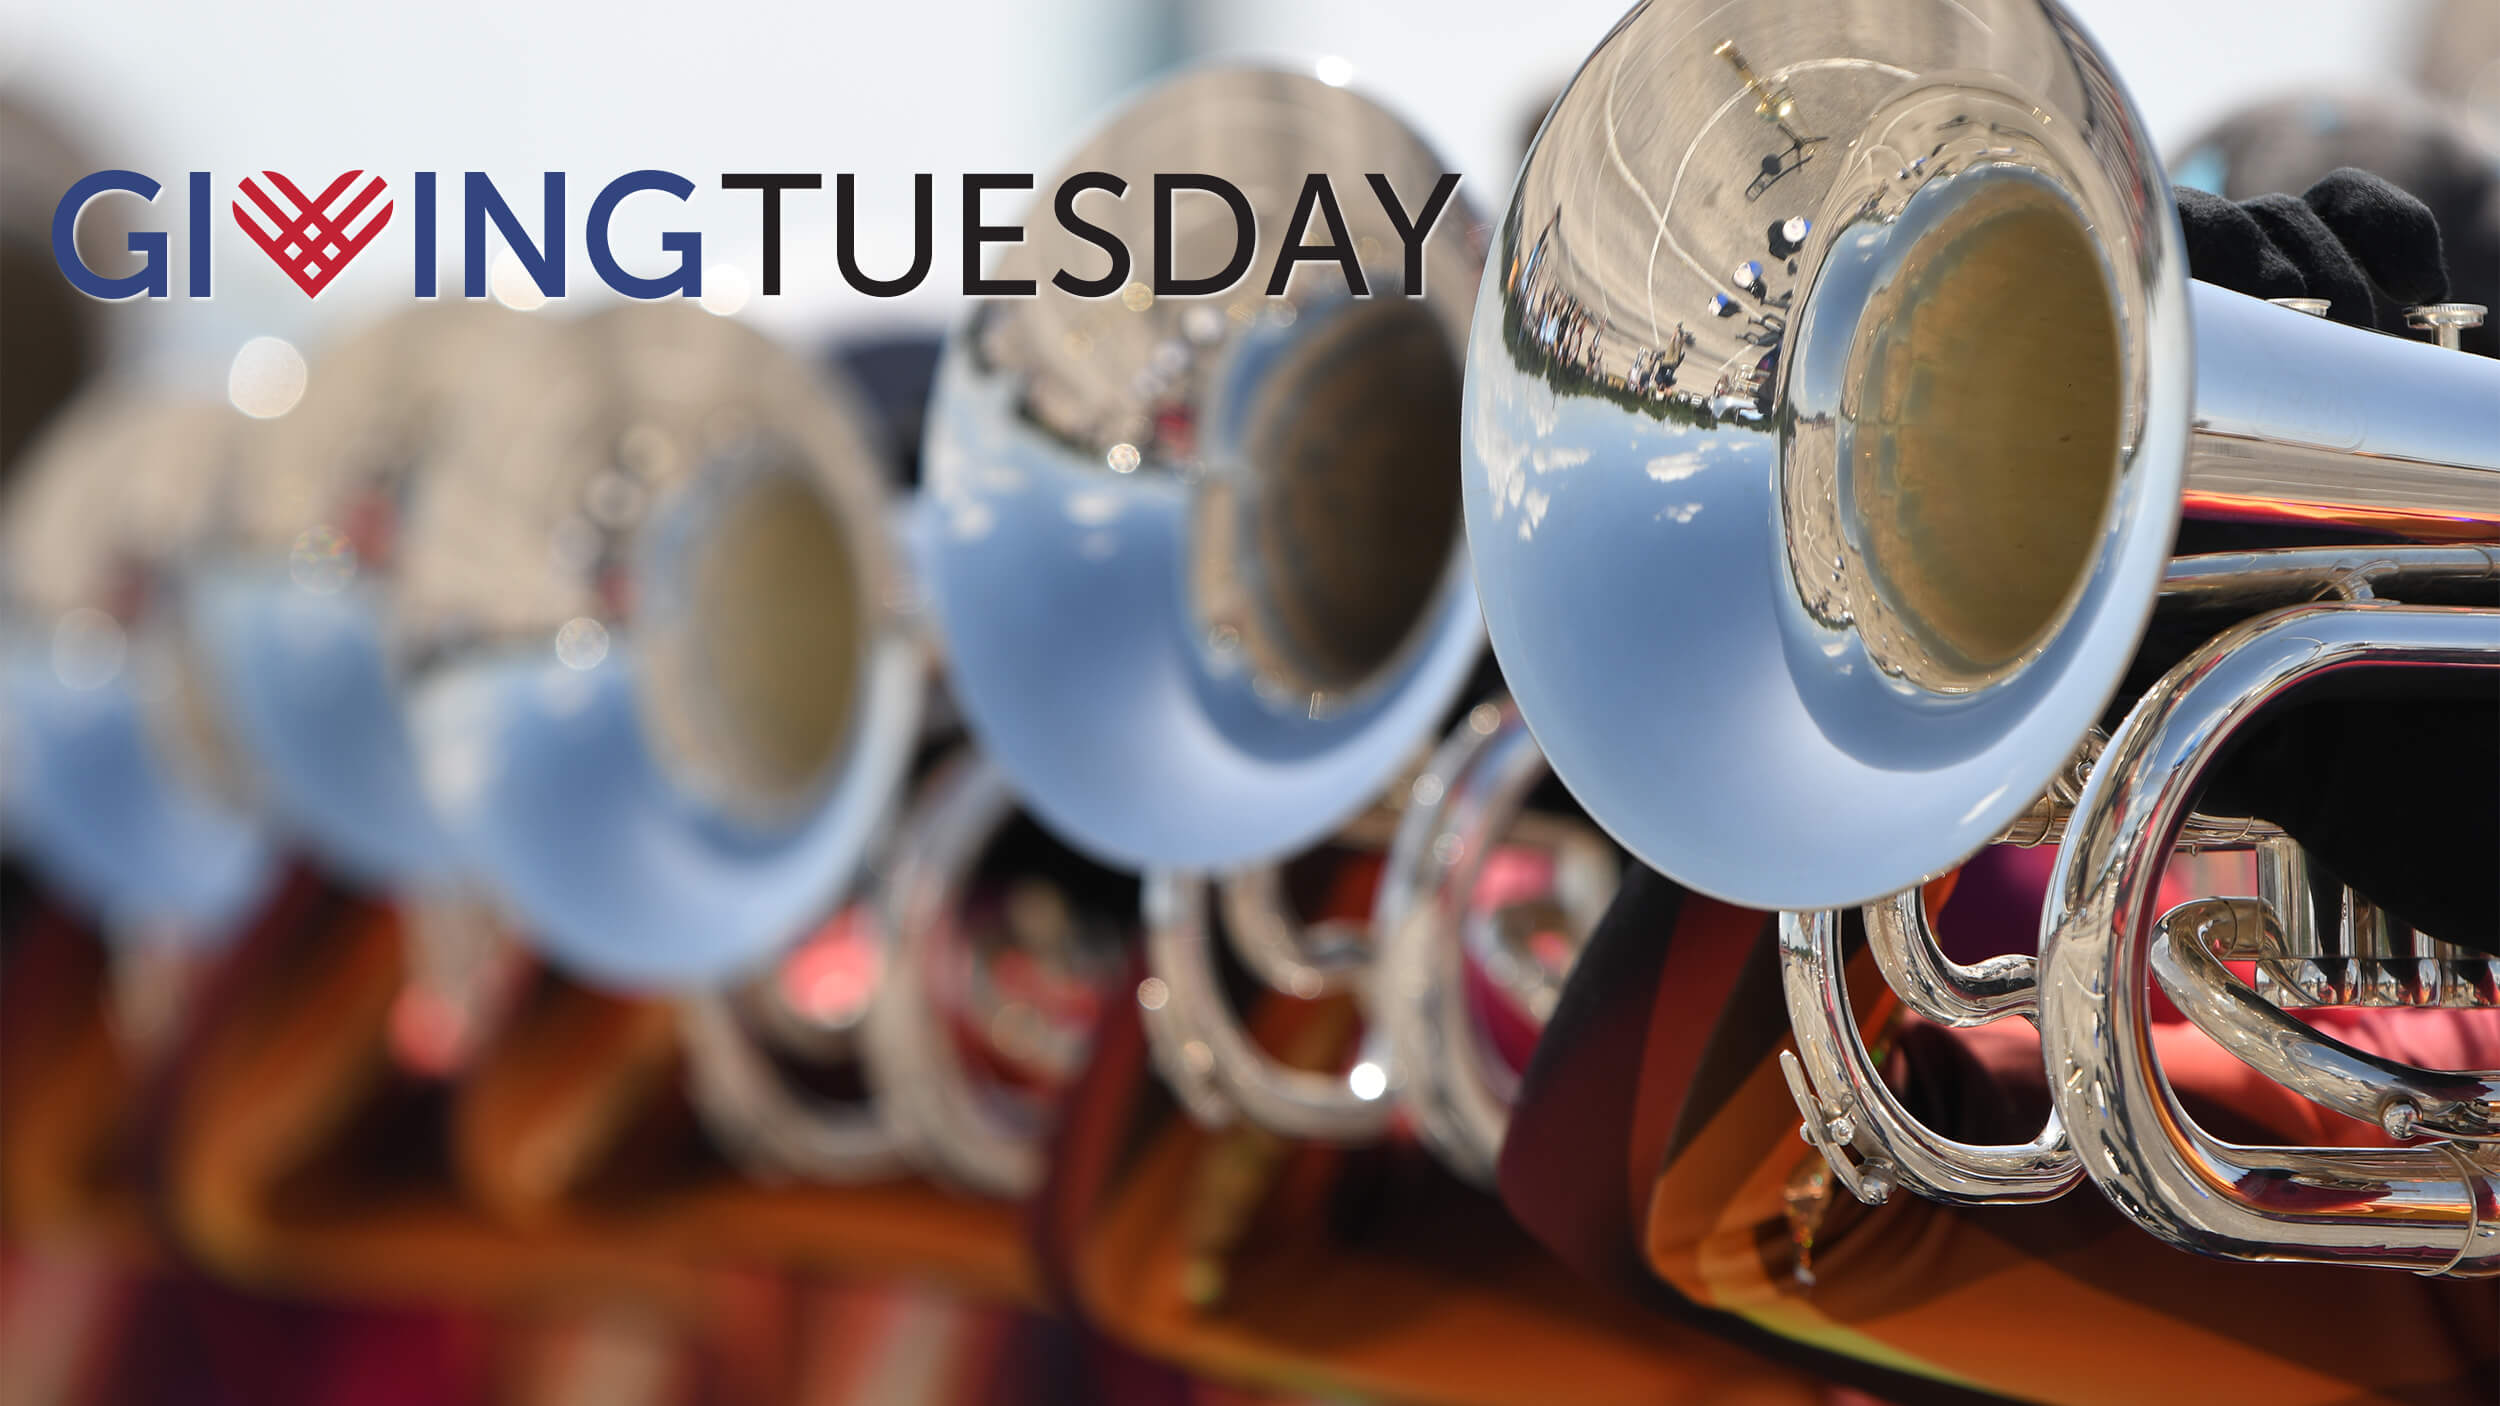 5 ways you can give on #GivingTuesday 2020